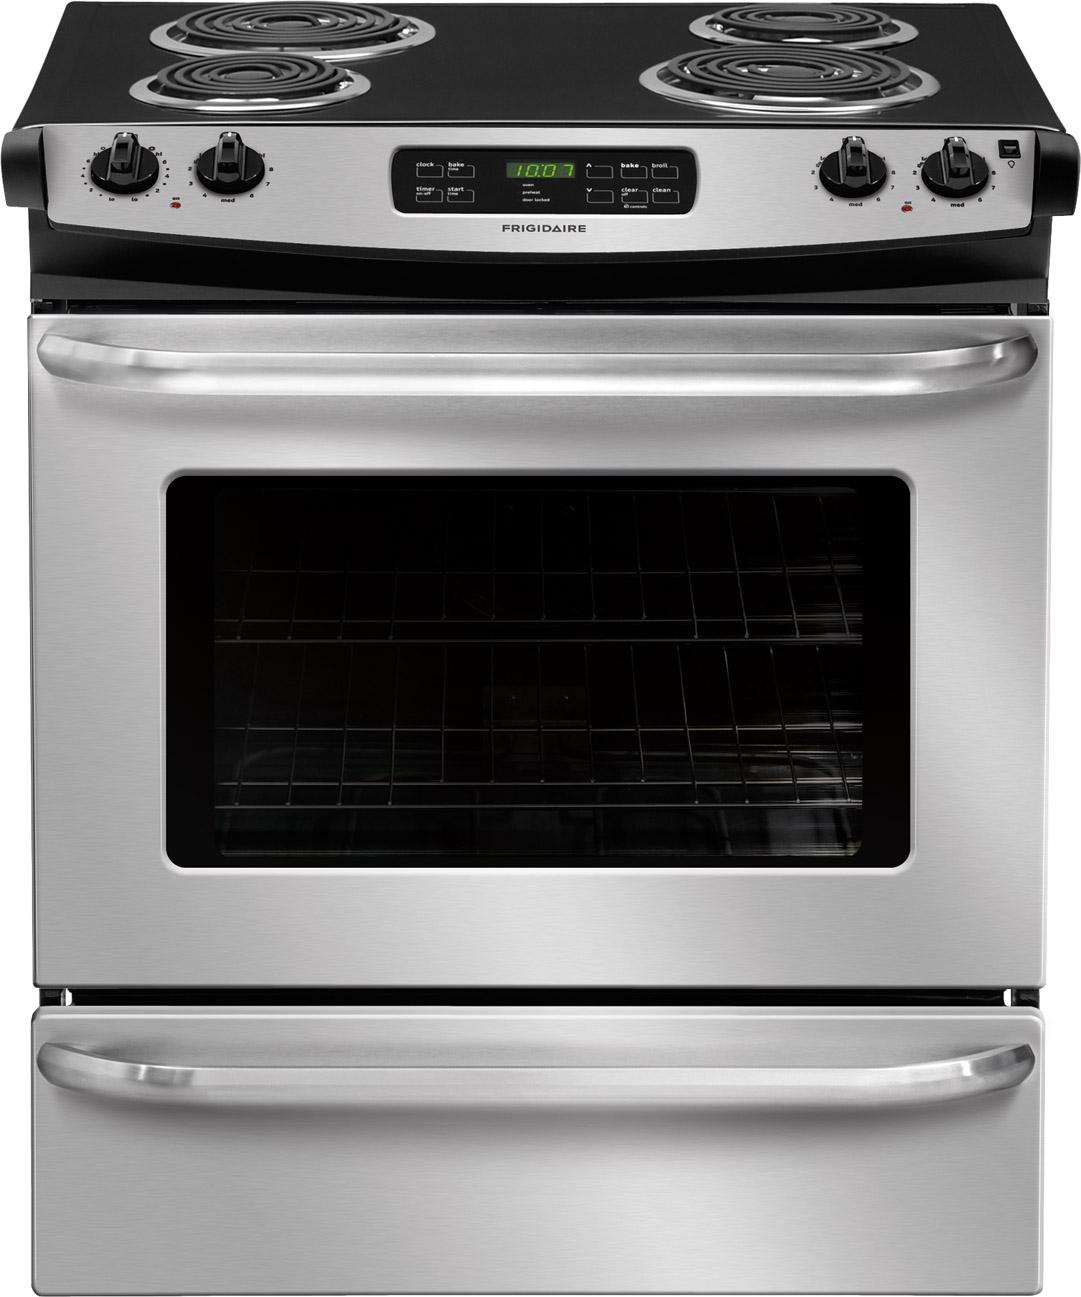 "Frigidaire Electric Range 30"" Slide-In Electric Range - Item Number: FFES3015PS"